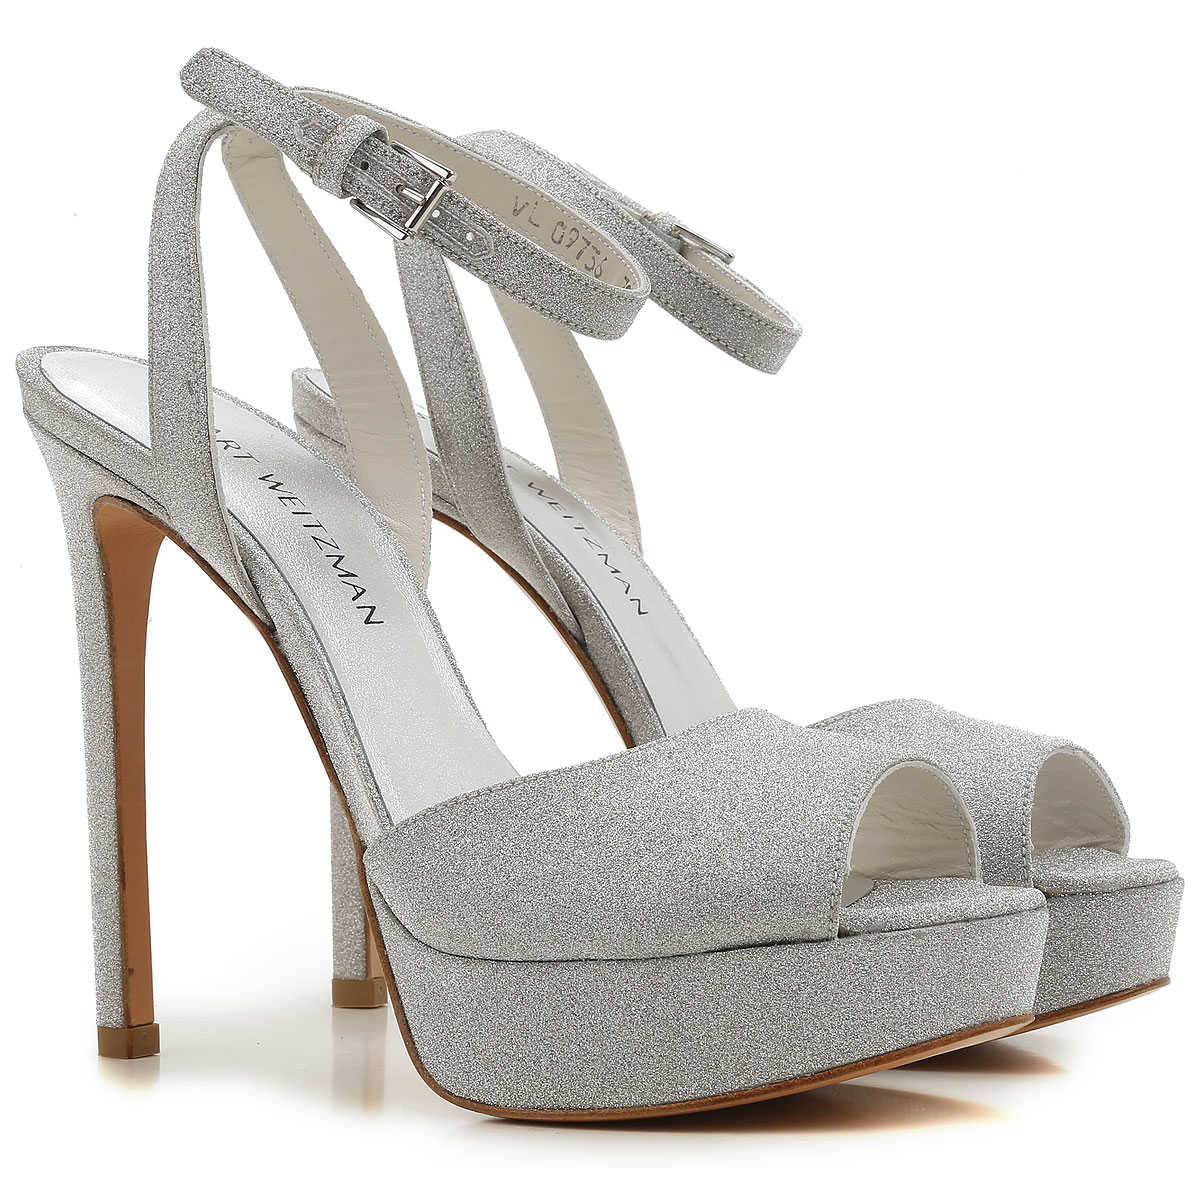 Stuart Weitzman Sandals for Women On Sale in Outlet